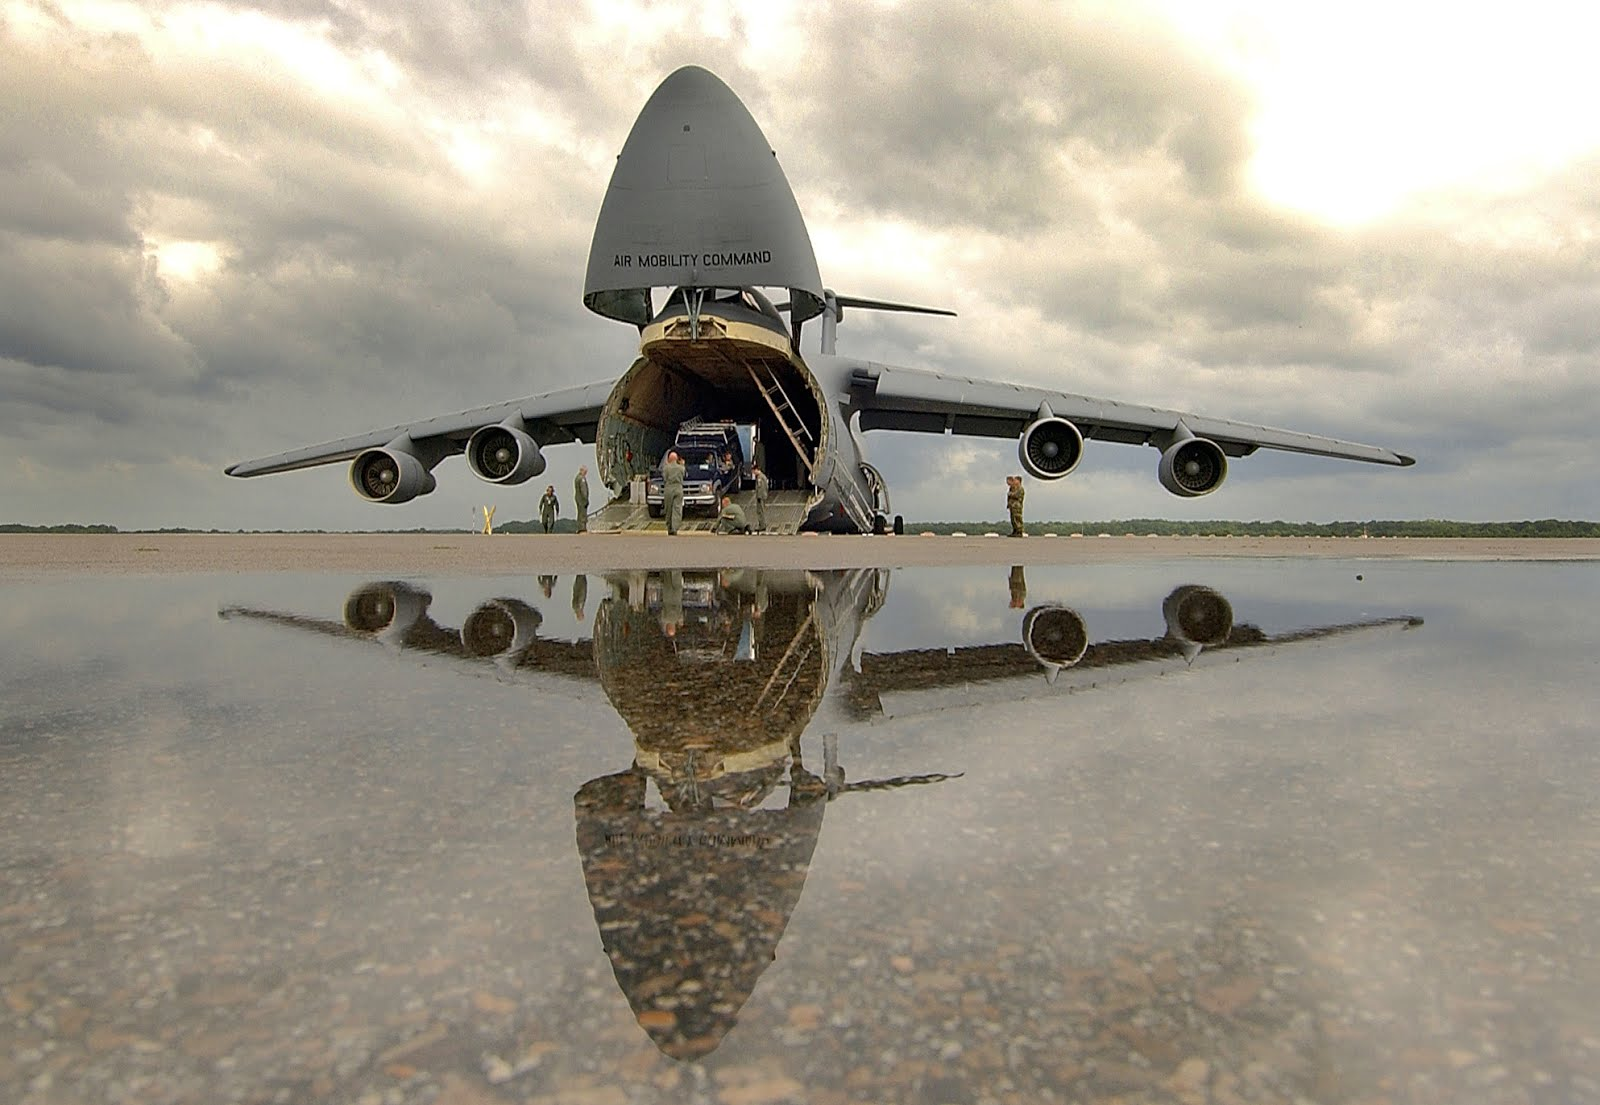 C-5 Galaxy military transport aircraft